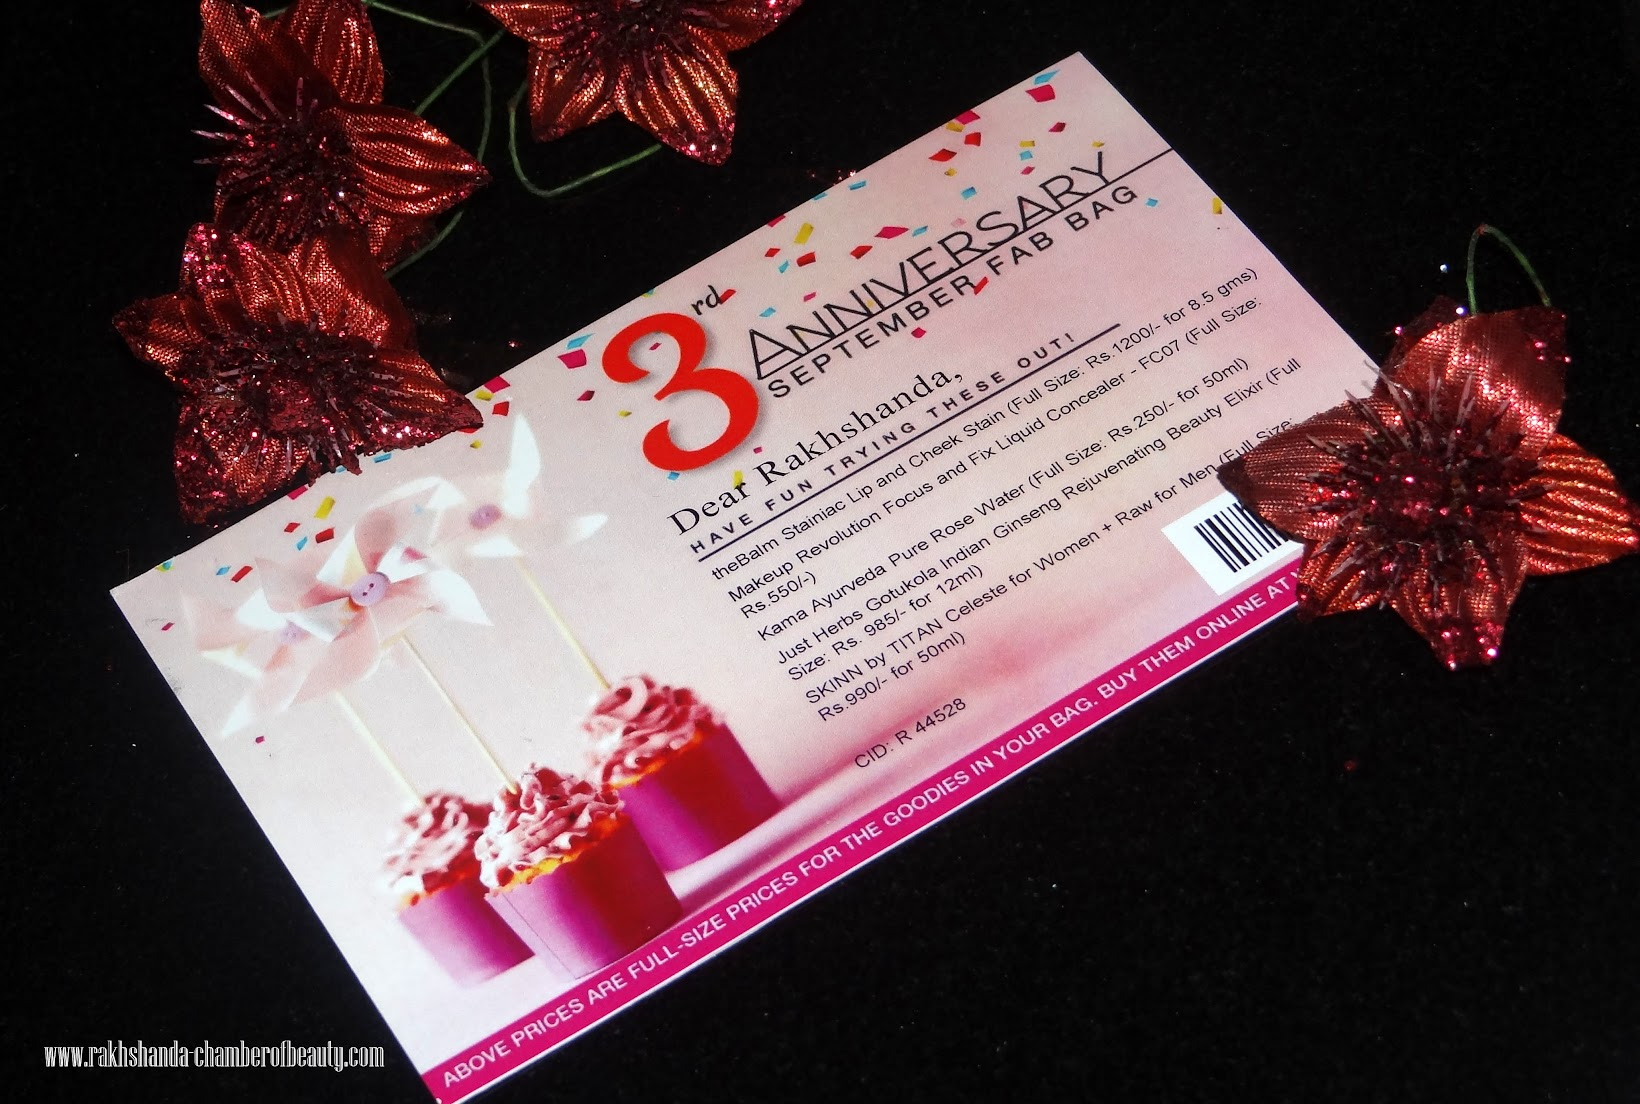 Fab Bag September 2015 (3rd Anniversary Special)- review, swatches, photos, Indian Beauty blogger, Chamber of Beauty